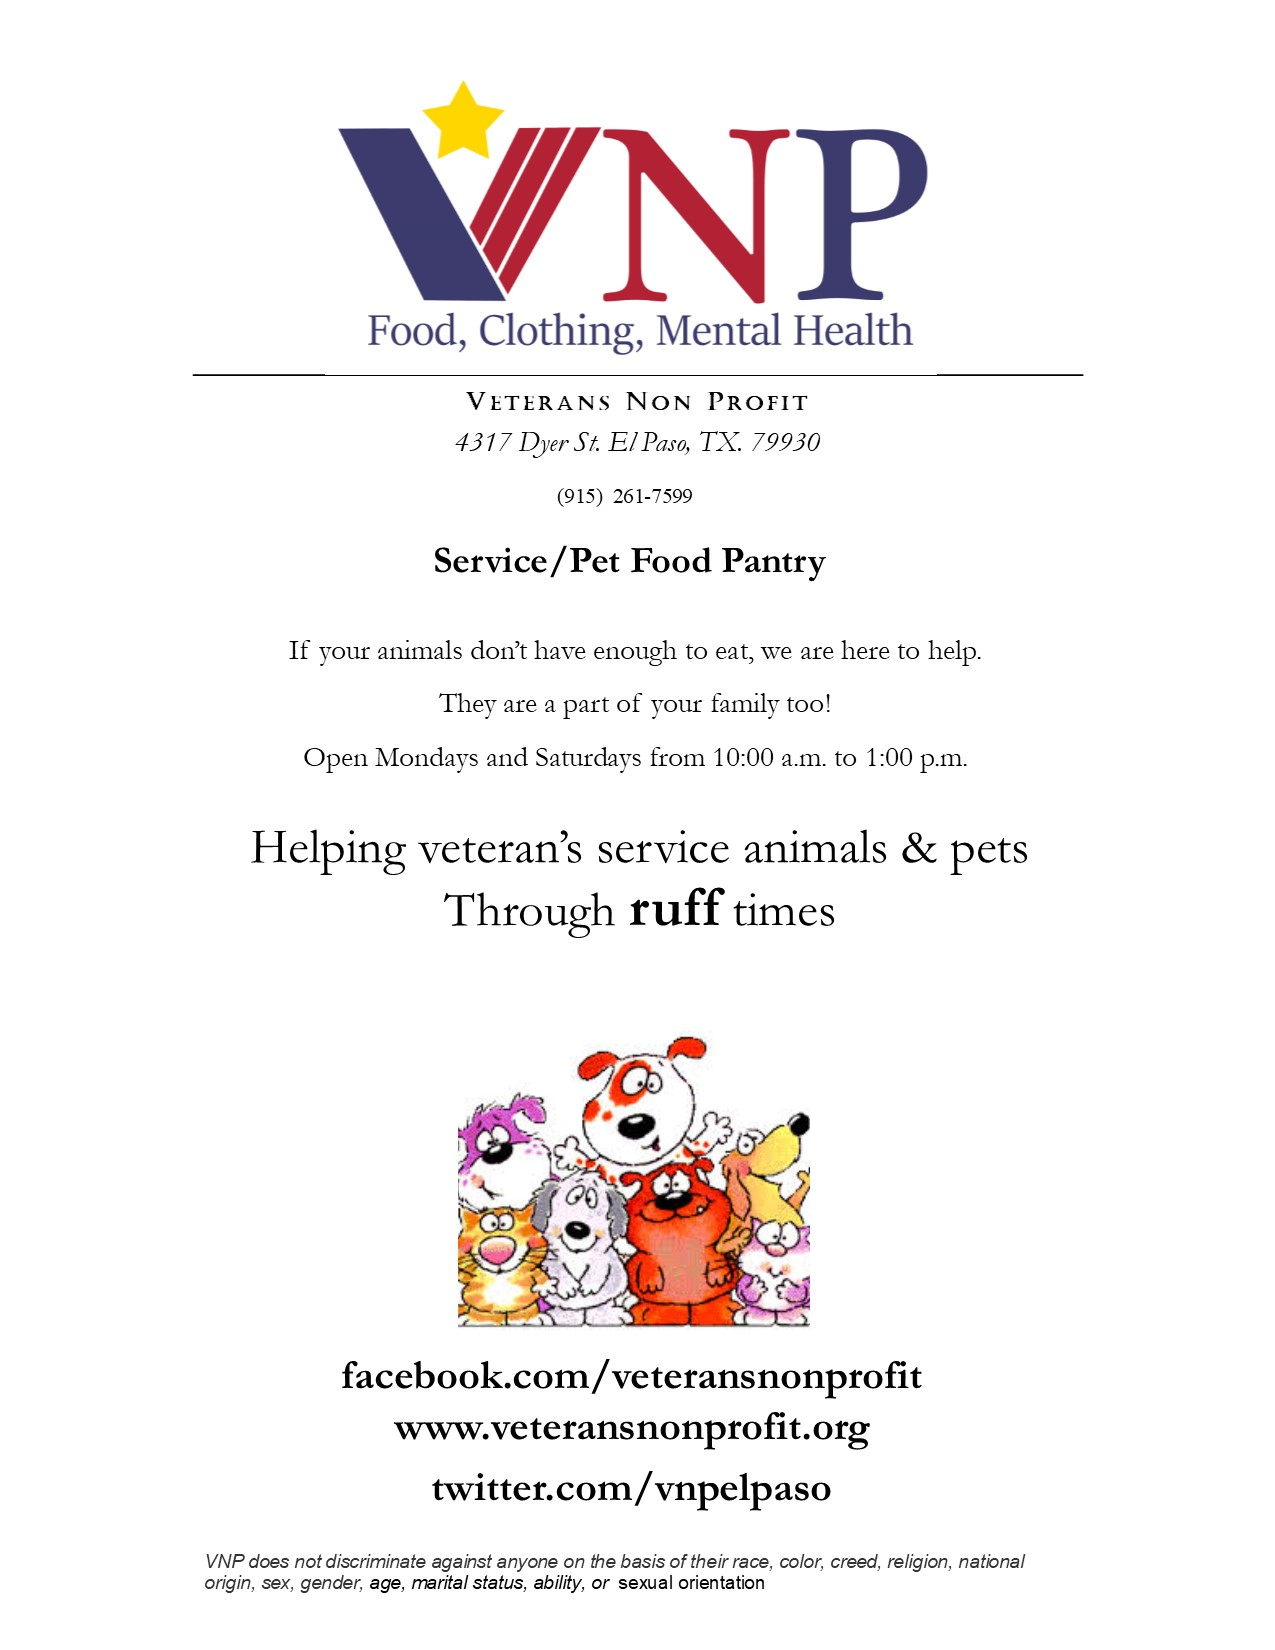 VNP-Pet-Food-Pantry-Flier JPEG.jpg